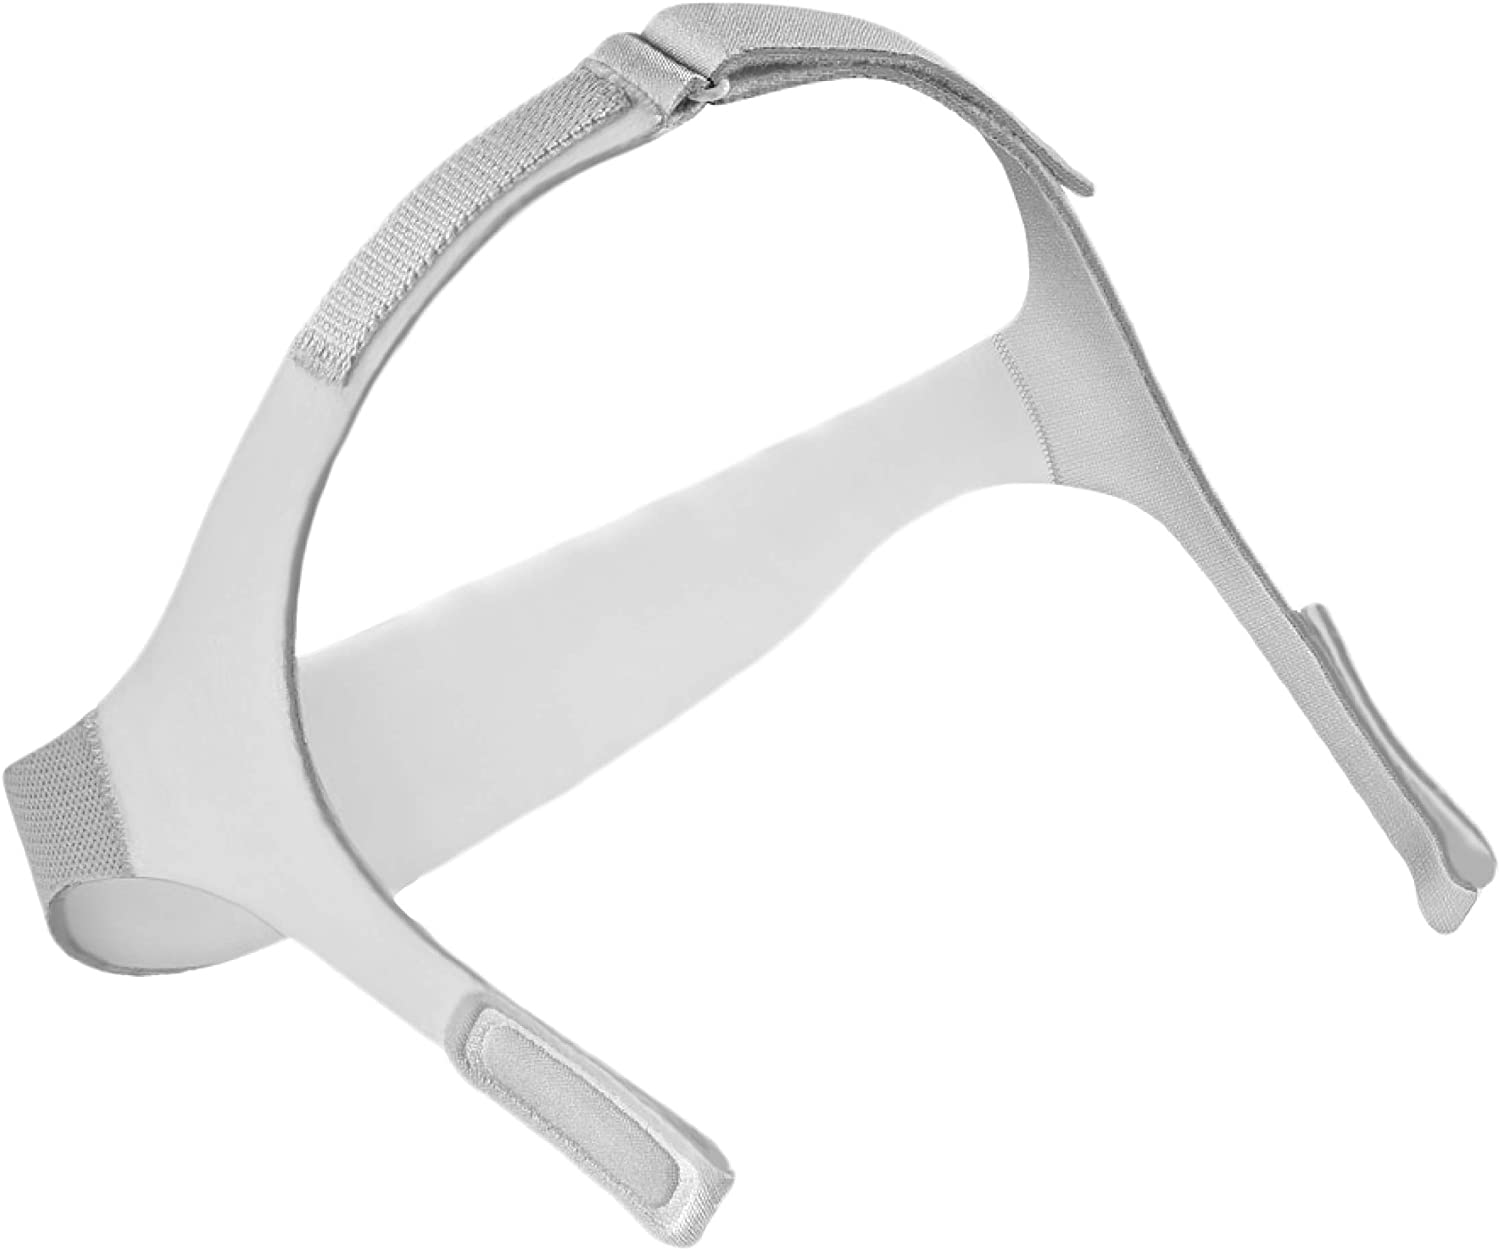 Essential Values Replacement Headgear Strap, Compatible with Nuance Pro Headgear Nasal Masks - Gain Comfort and Strength | Easy to Assemble for CPAP Machines